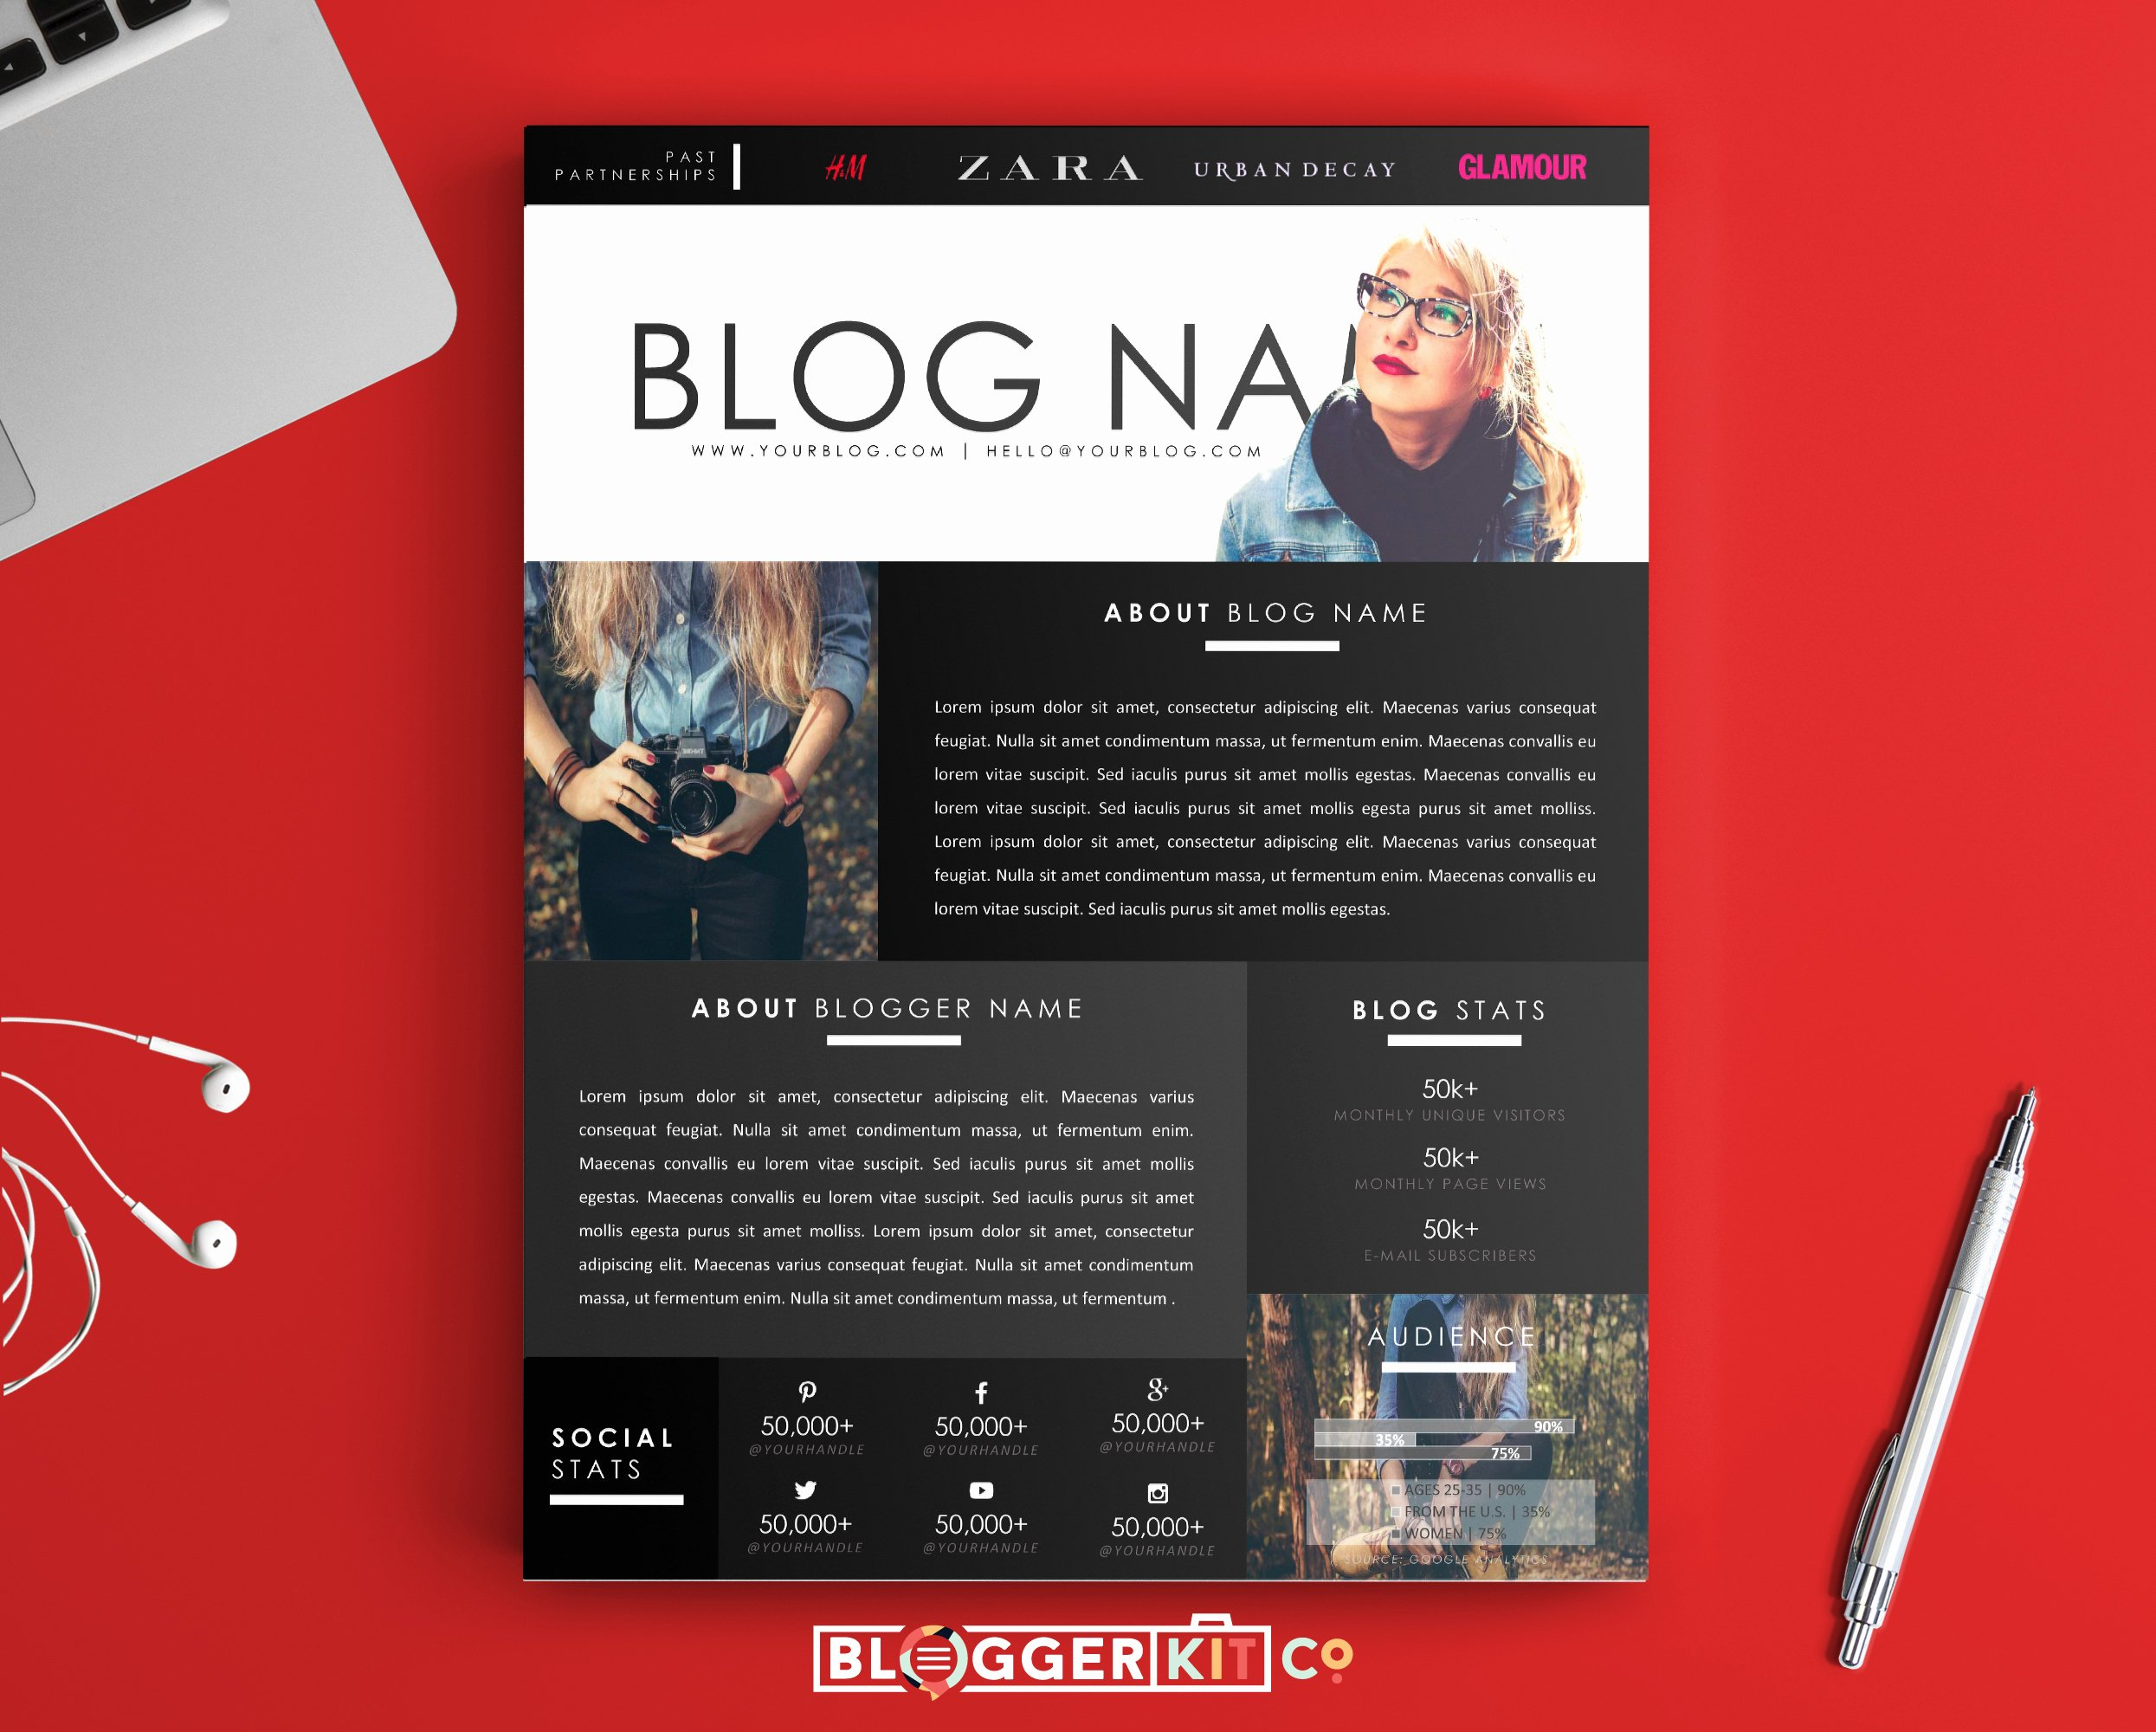 Free Press Kit Template Best Of the Dreamer Media Kit Template